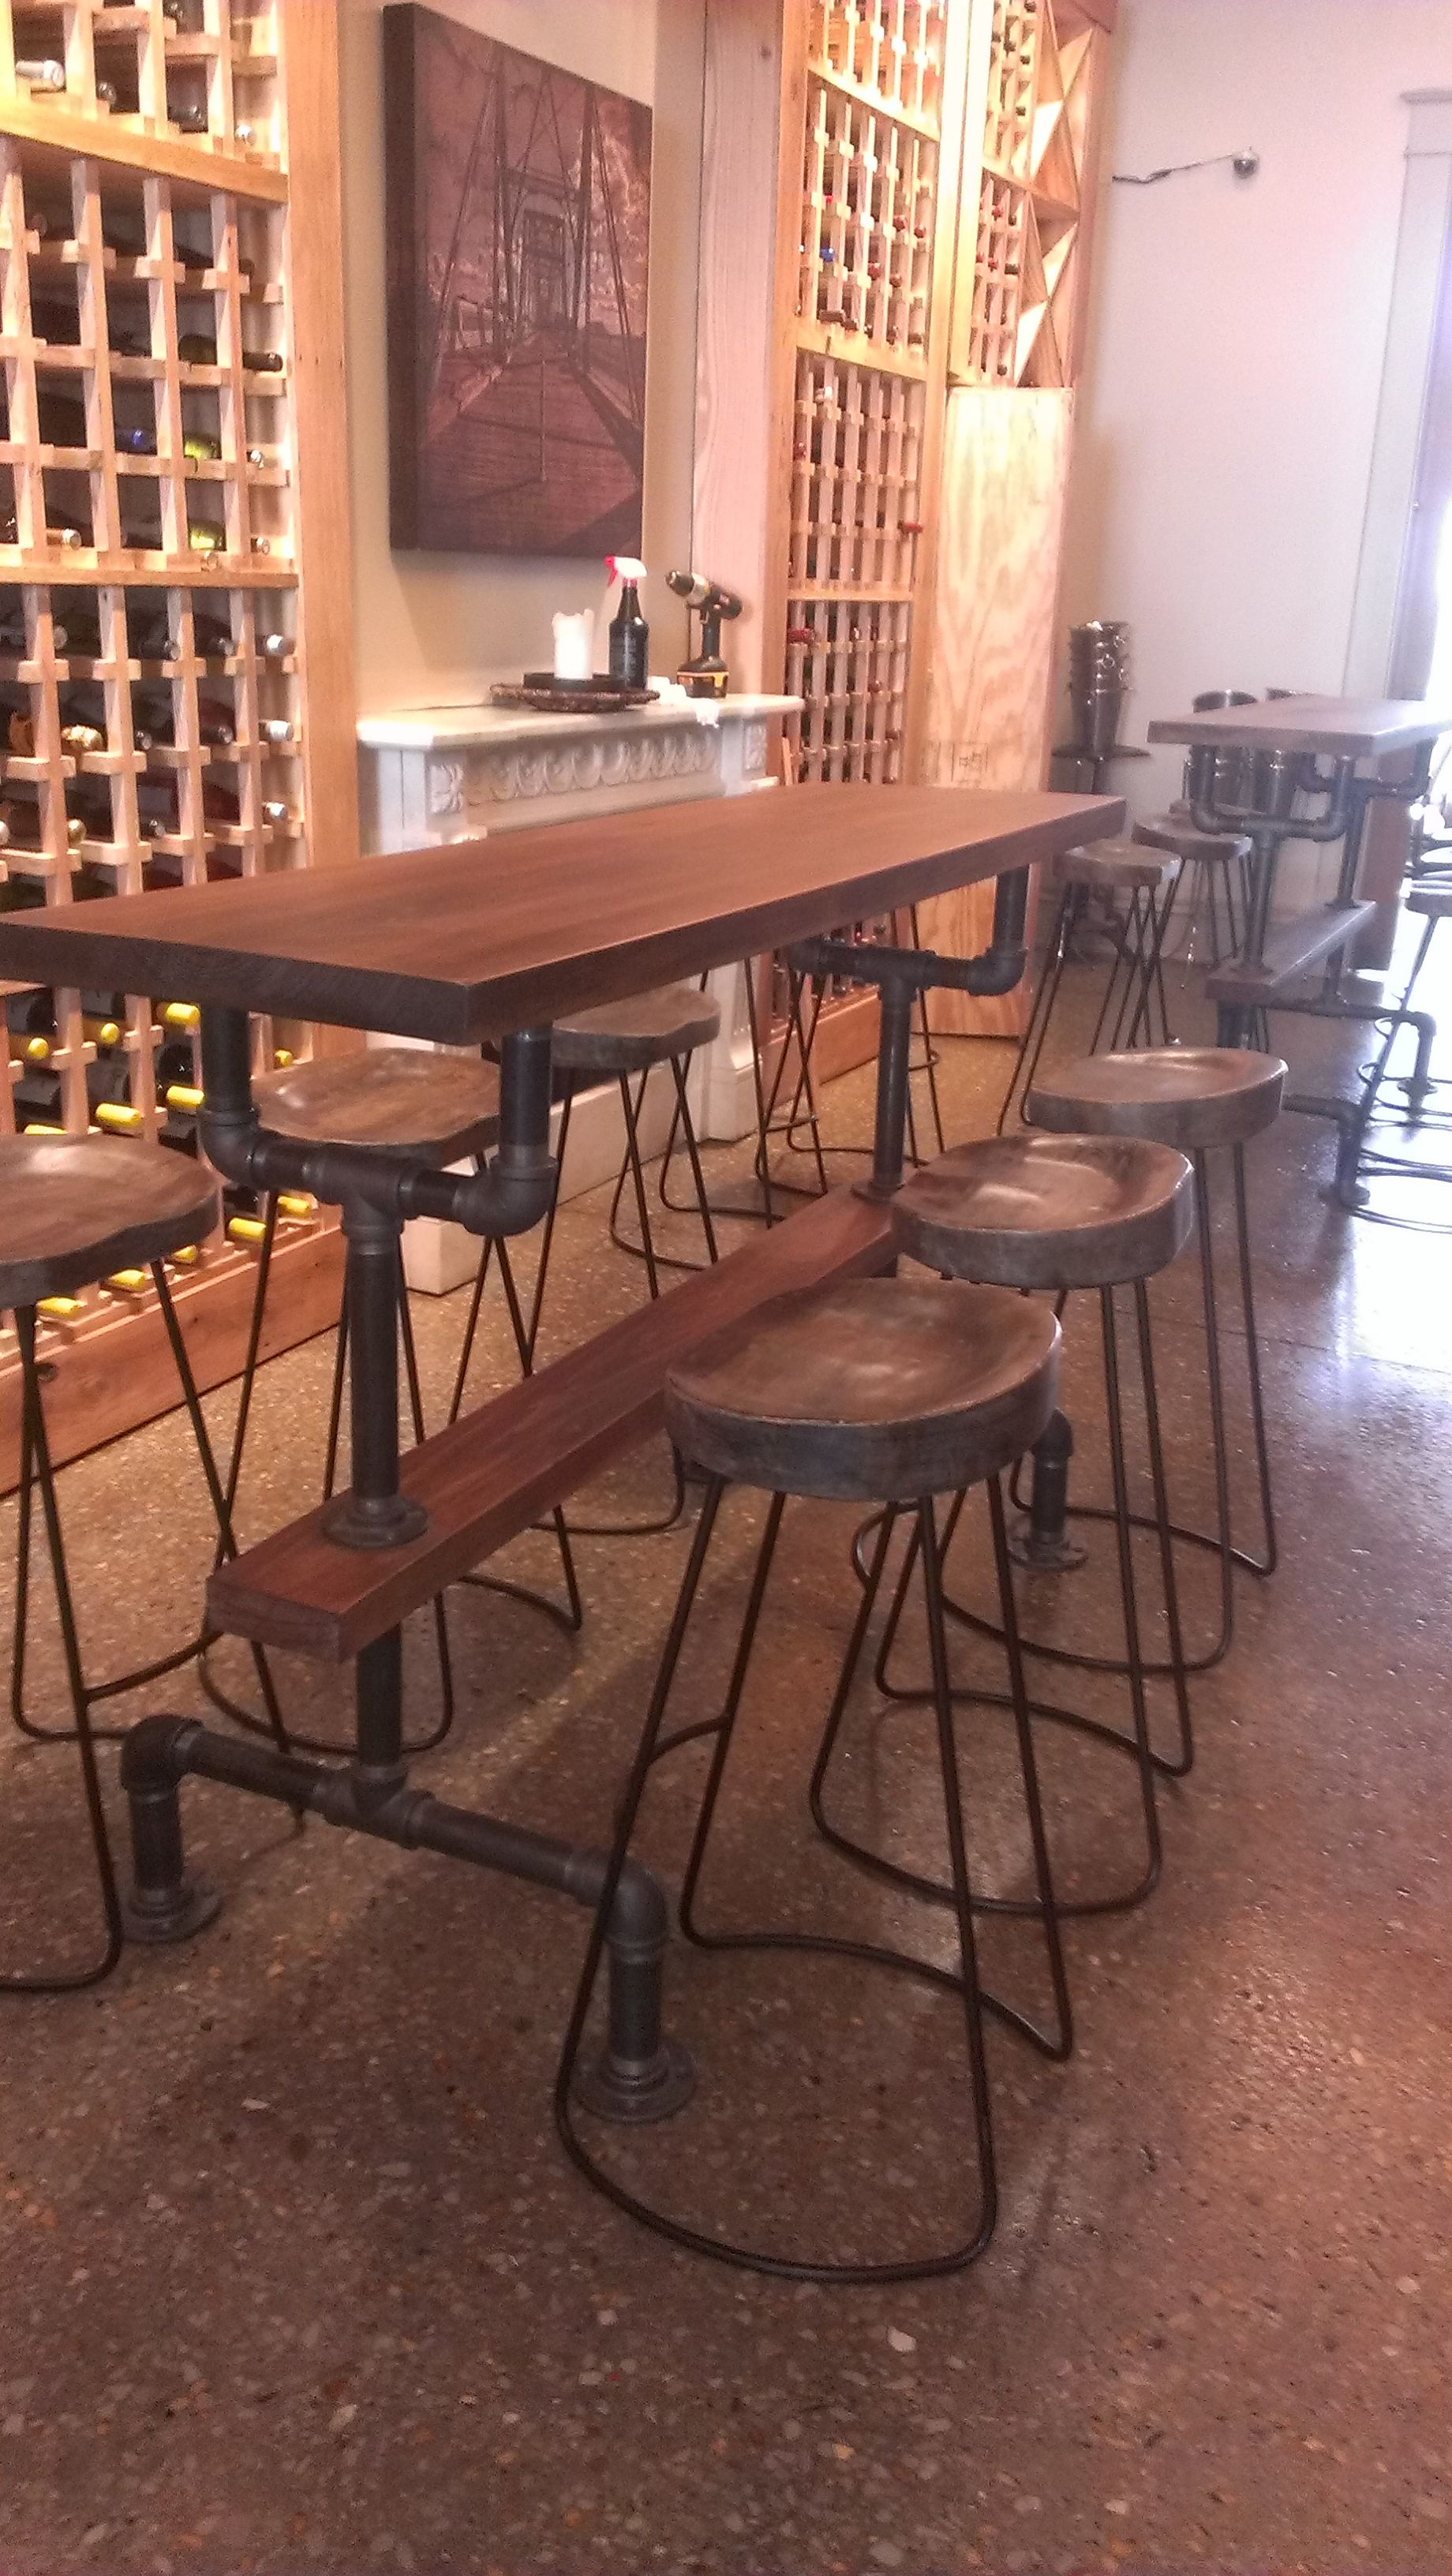 Industrial Farmhouse Bar Table on Etsy Projects to think about